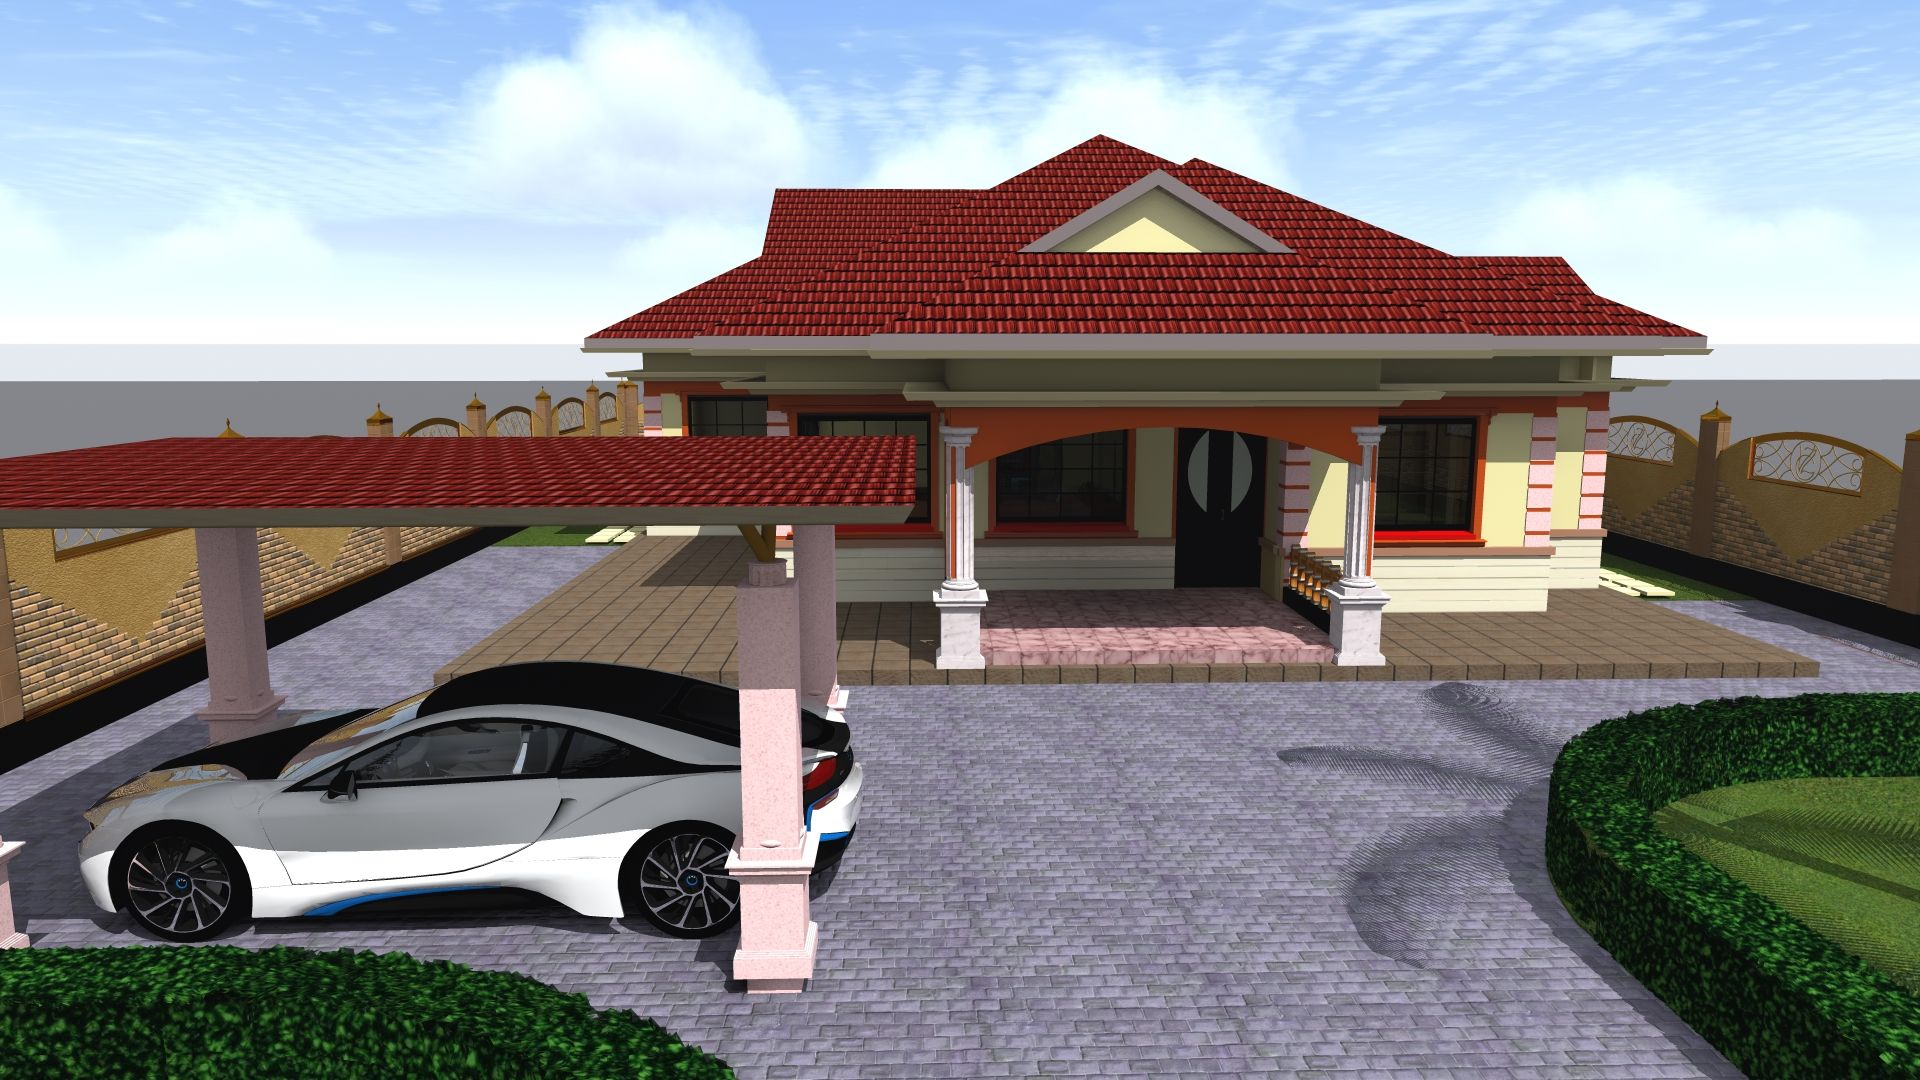 Four Bedroom Bungalow House Plan Muthurwa Com Bungalow House Plans 4 Bedroom House Plans House Designs In Kenya